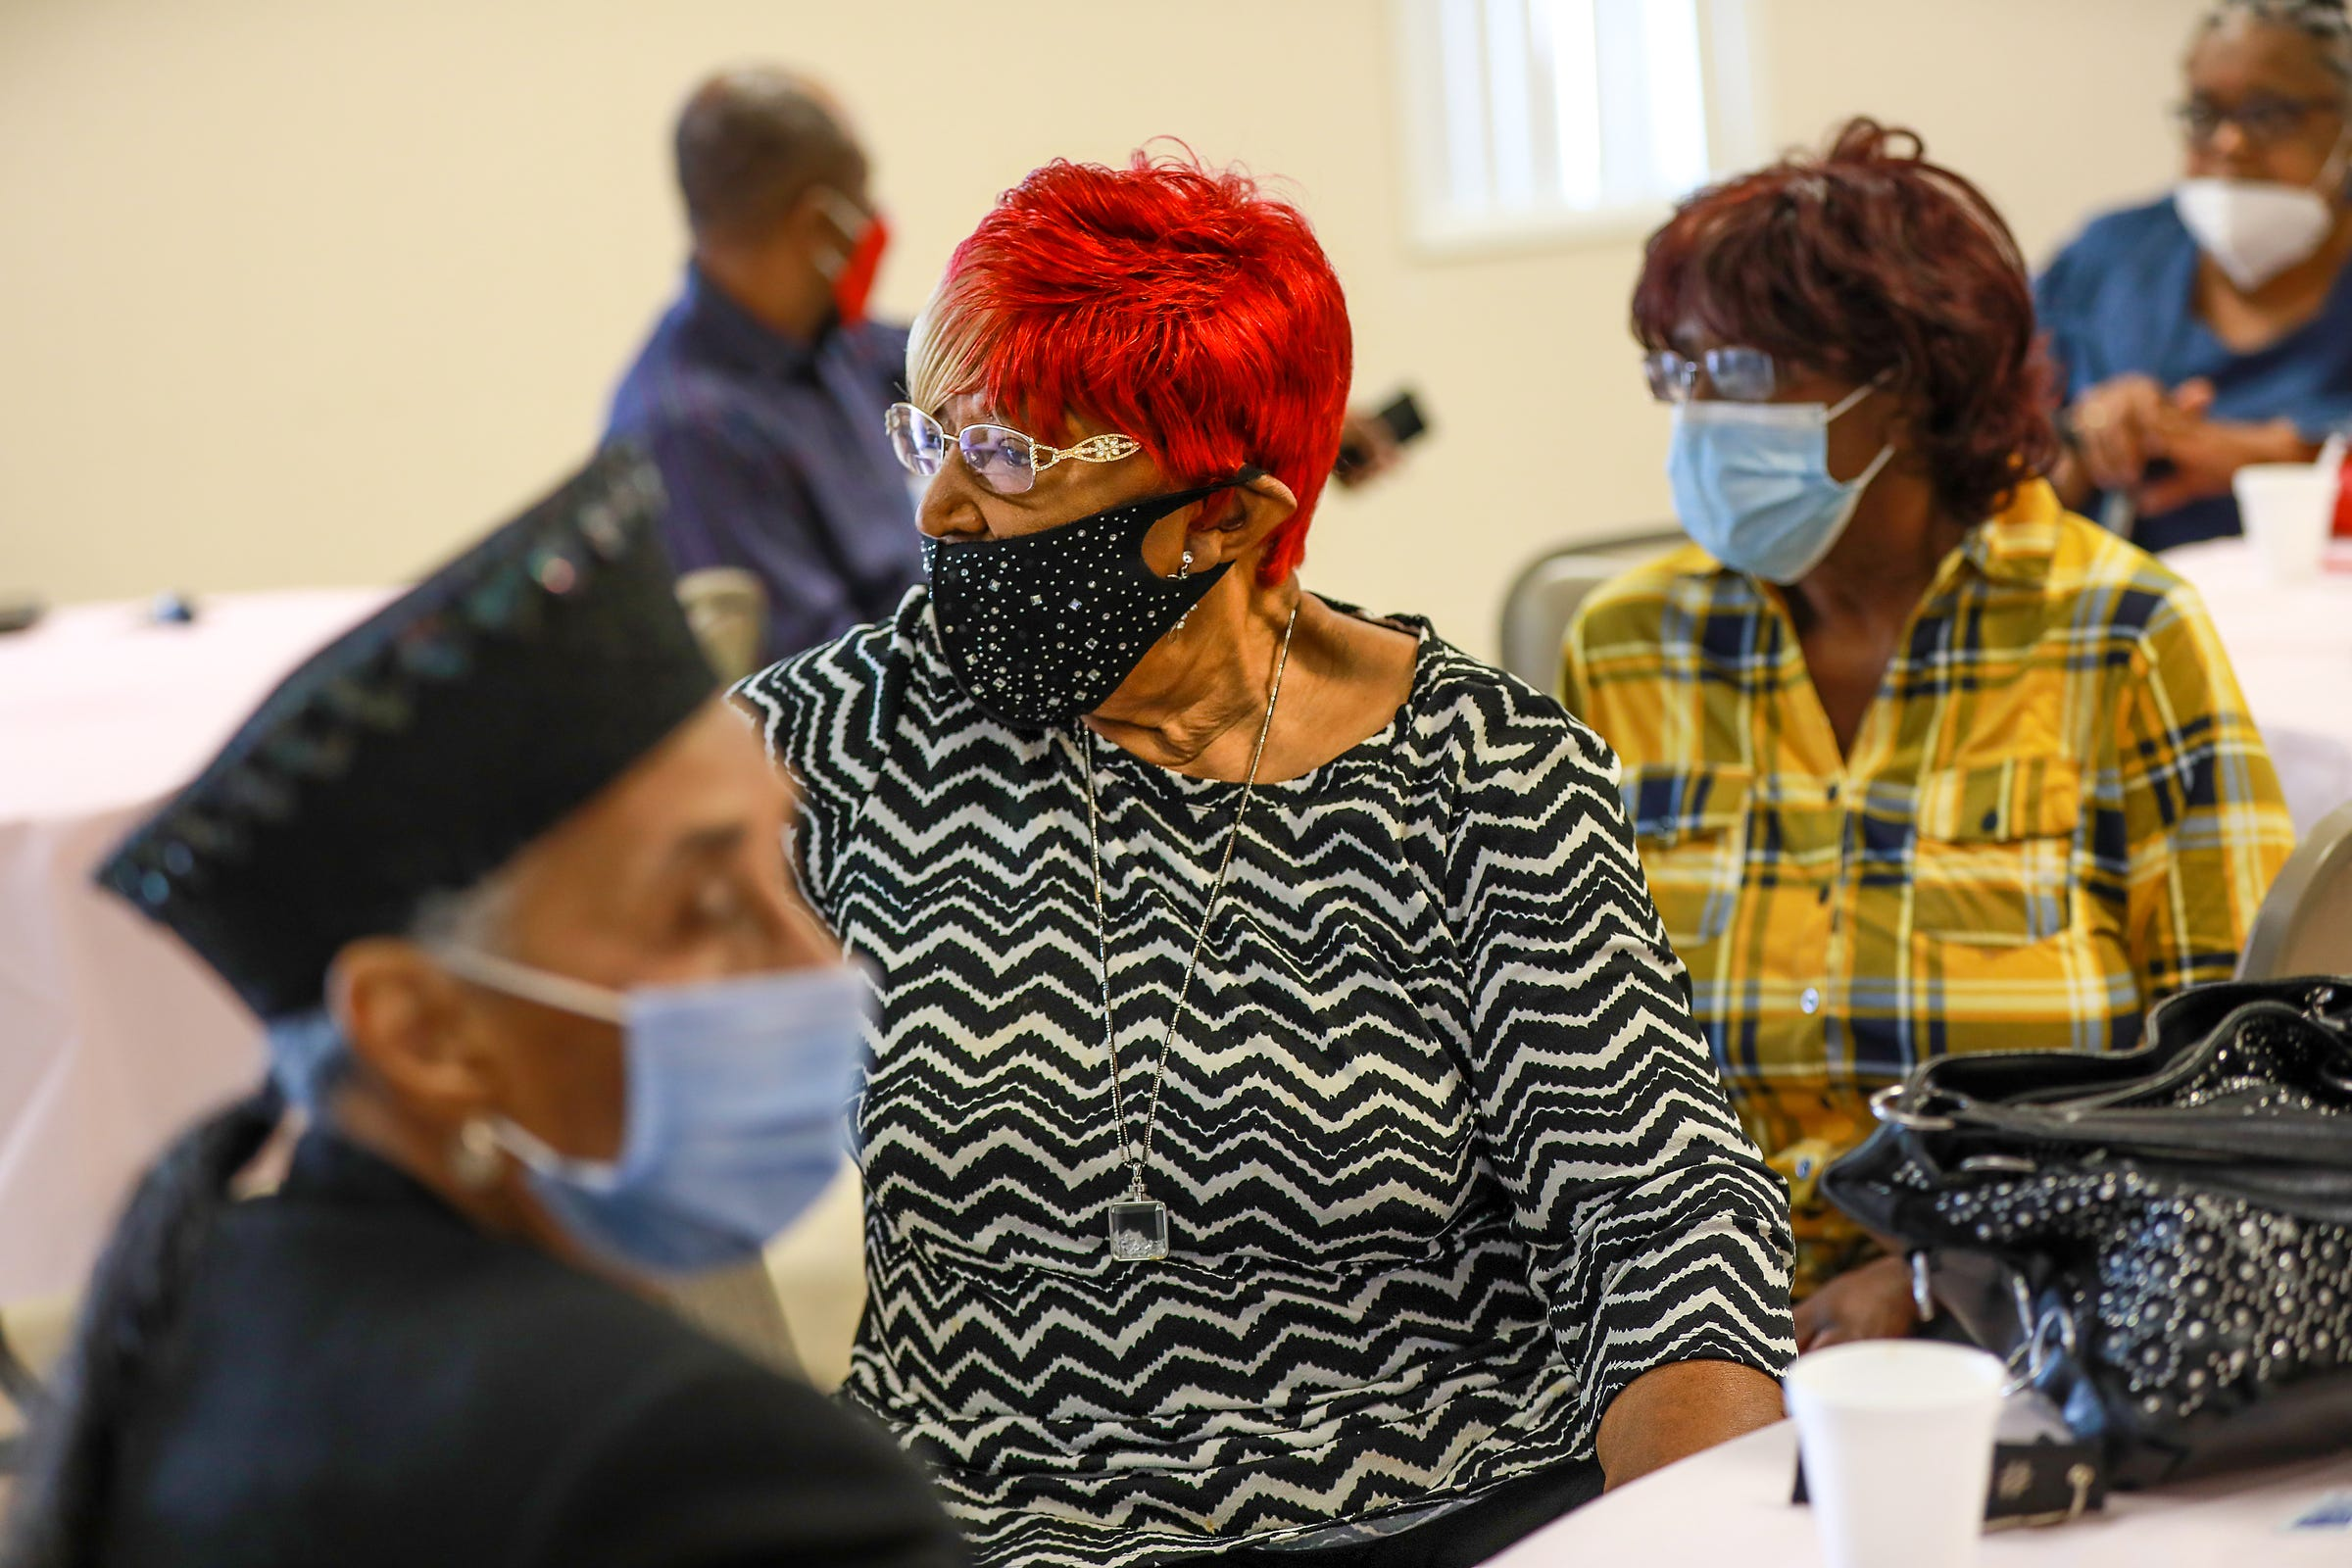 Bessie Stallworth, 90, of Detroit has been a member of the Northend Church of God and Christ since she moved to Detroit in 1950 during the second wave of the Great Migration from the south and has been committed to the church as much as she has been committed to raising her family in Detroit. Stallworth attends the Veterans Breakfast on Saturday, Sept. 11, 2021.